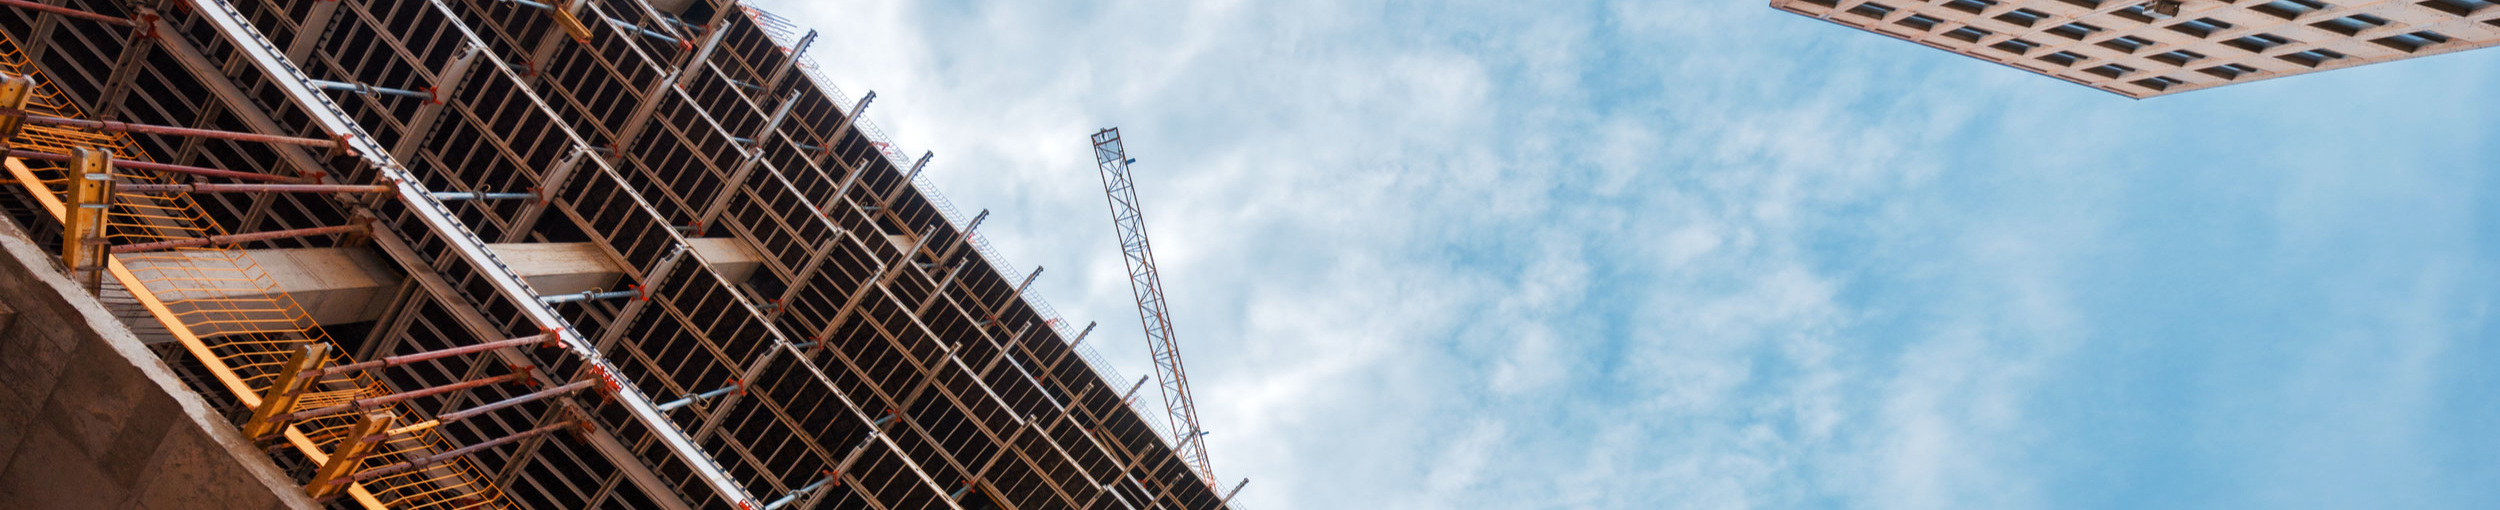 building-construction-site-with-scaffolding-RHPQYA6.jpg